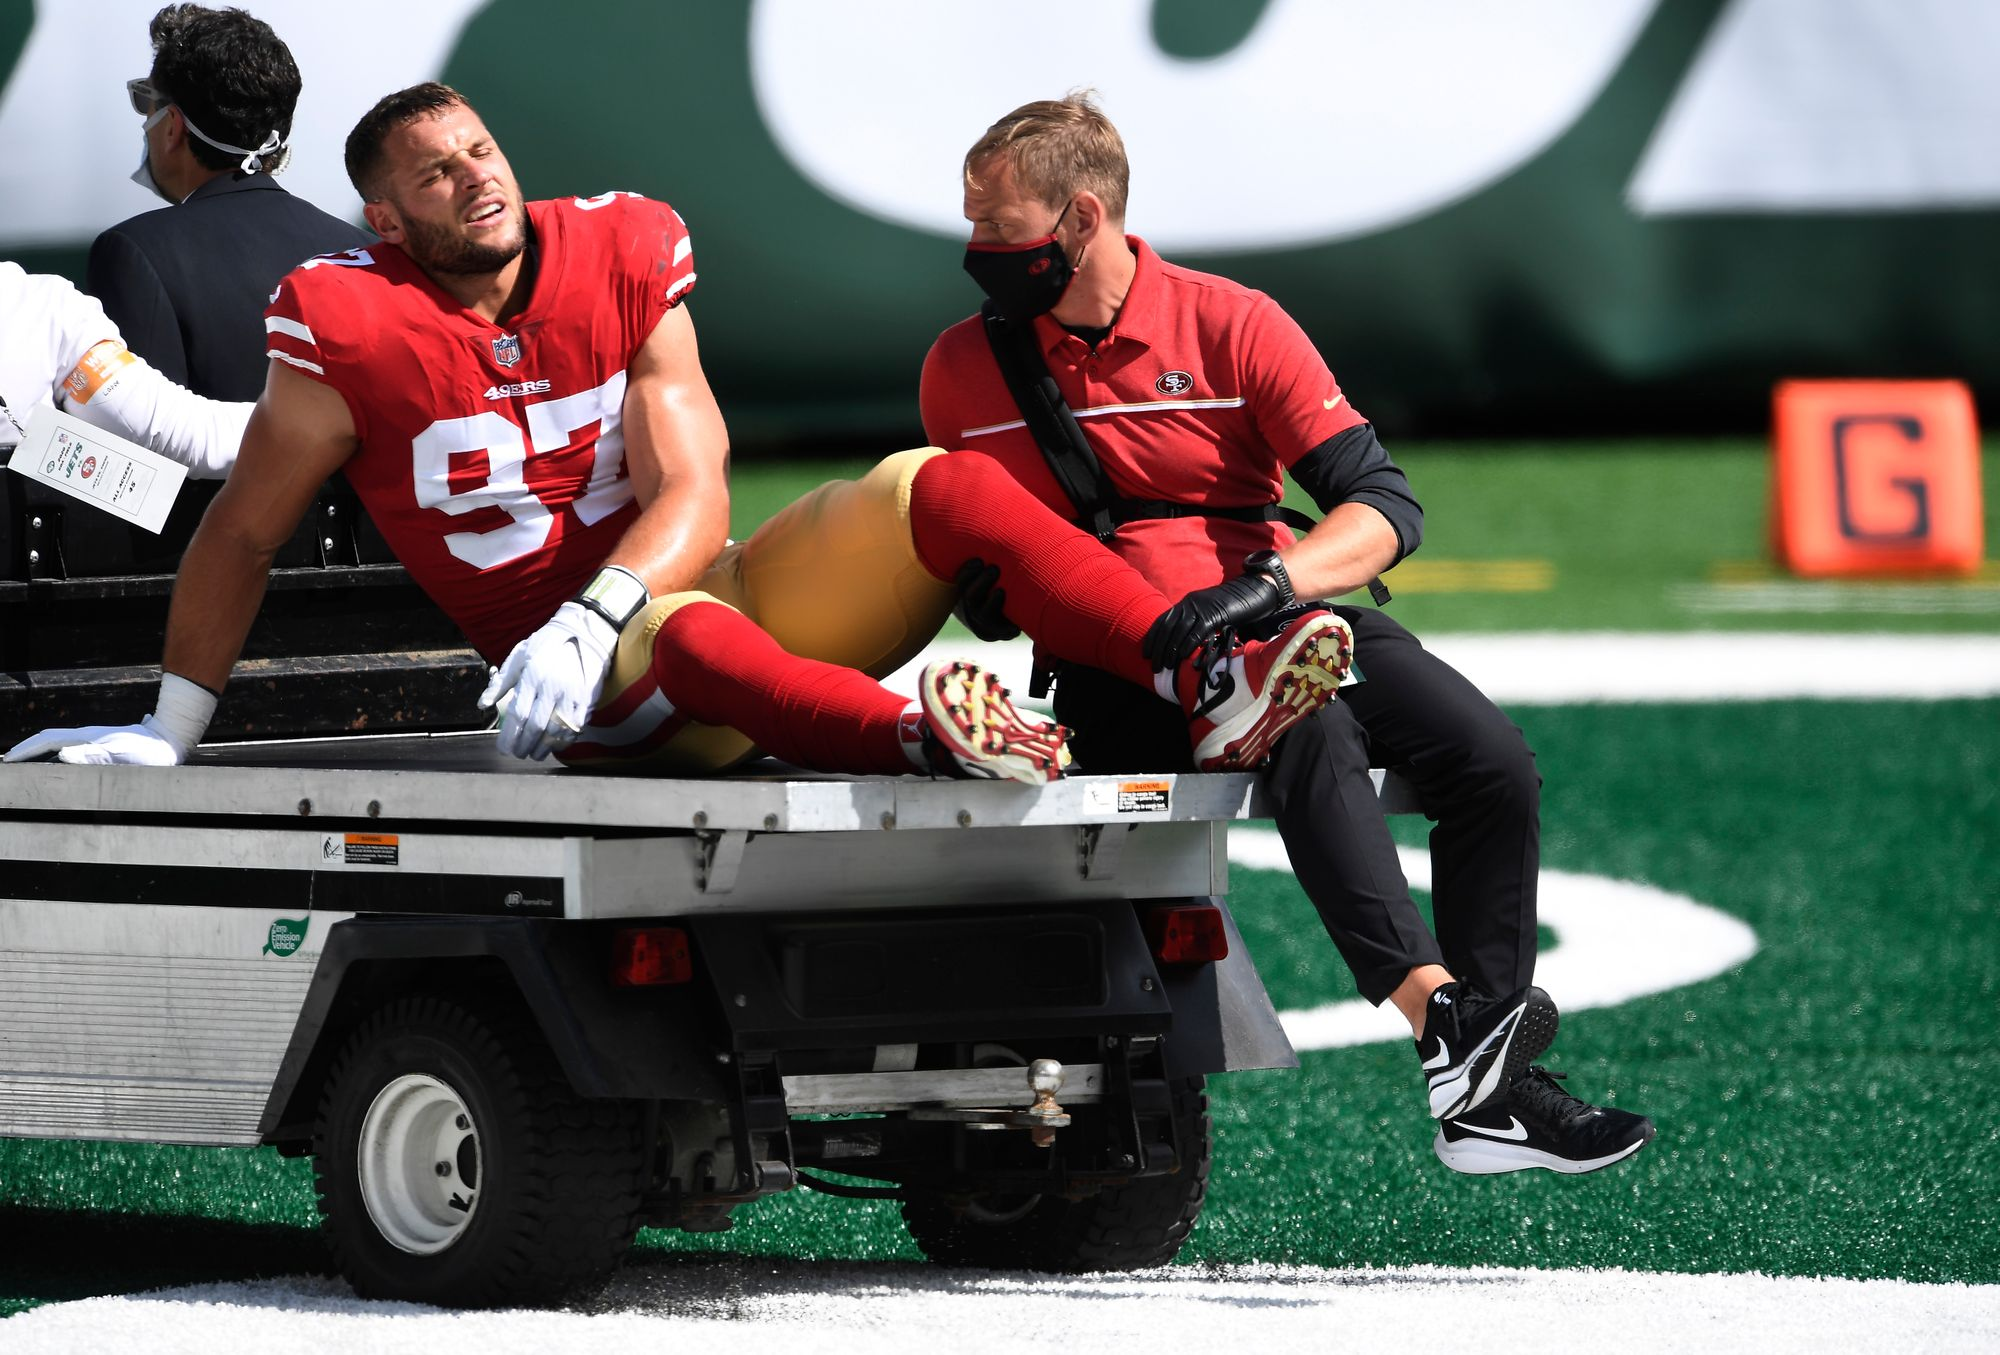 49ers' Depleted Roster Sustains More Injuries in 31-13 Win Against Jets